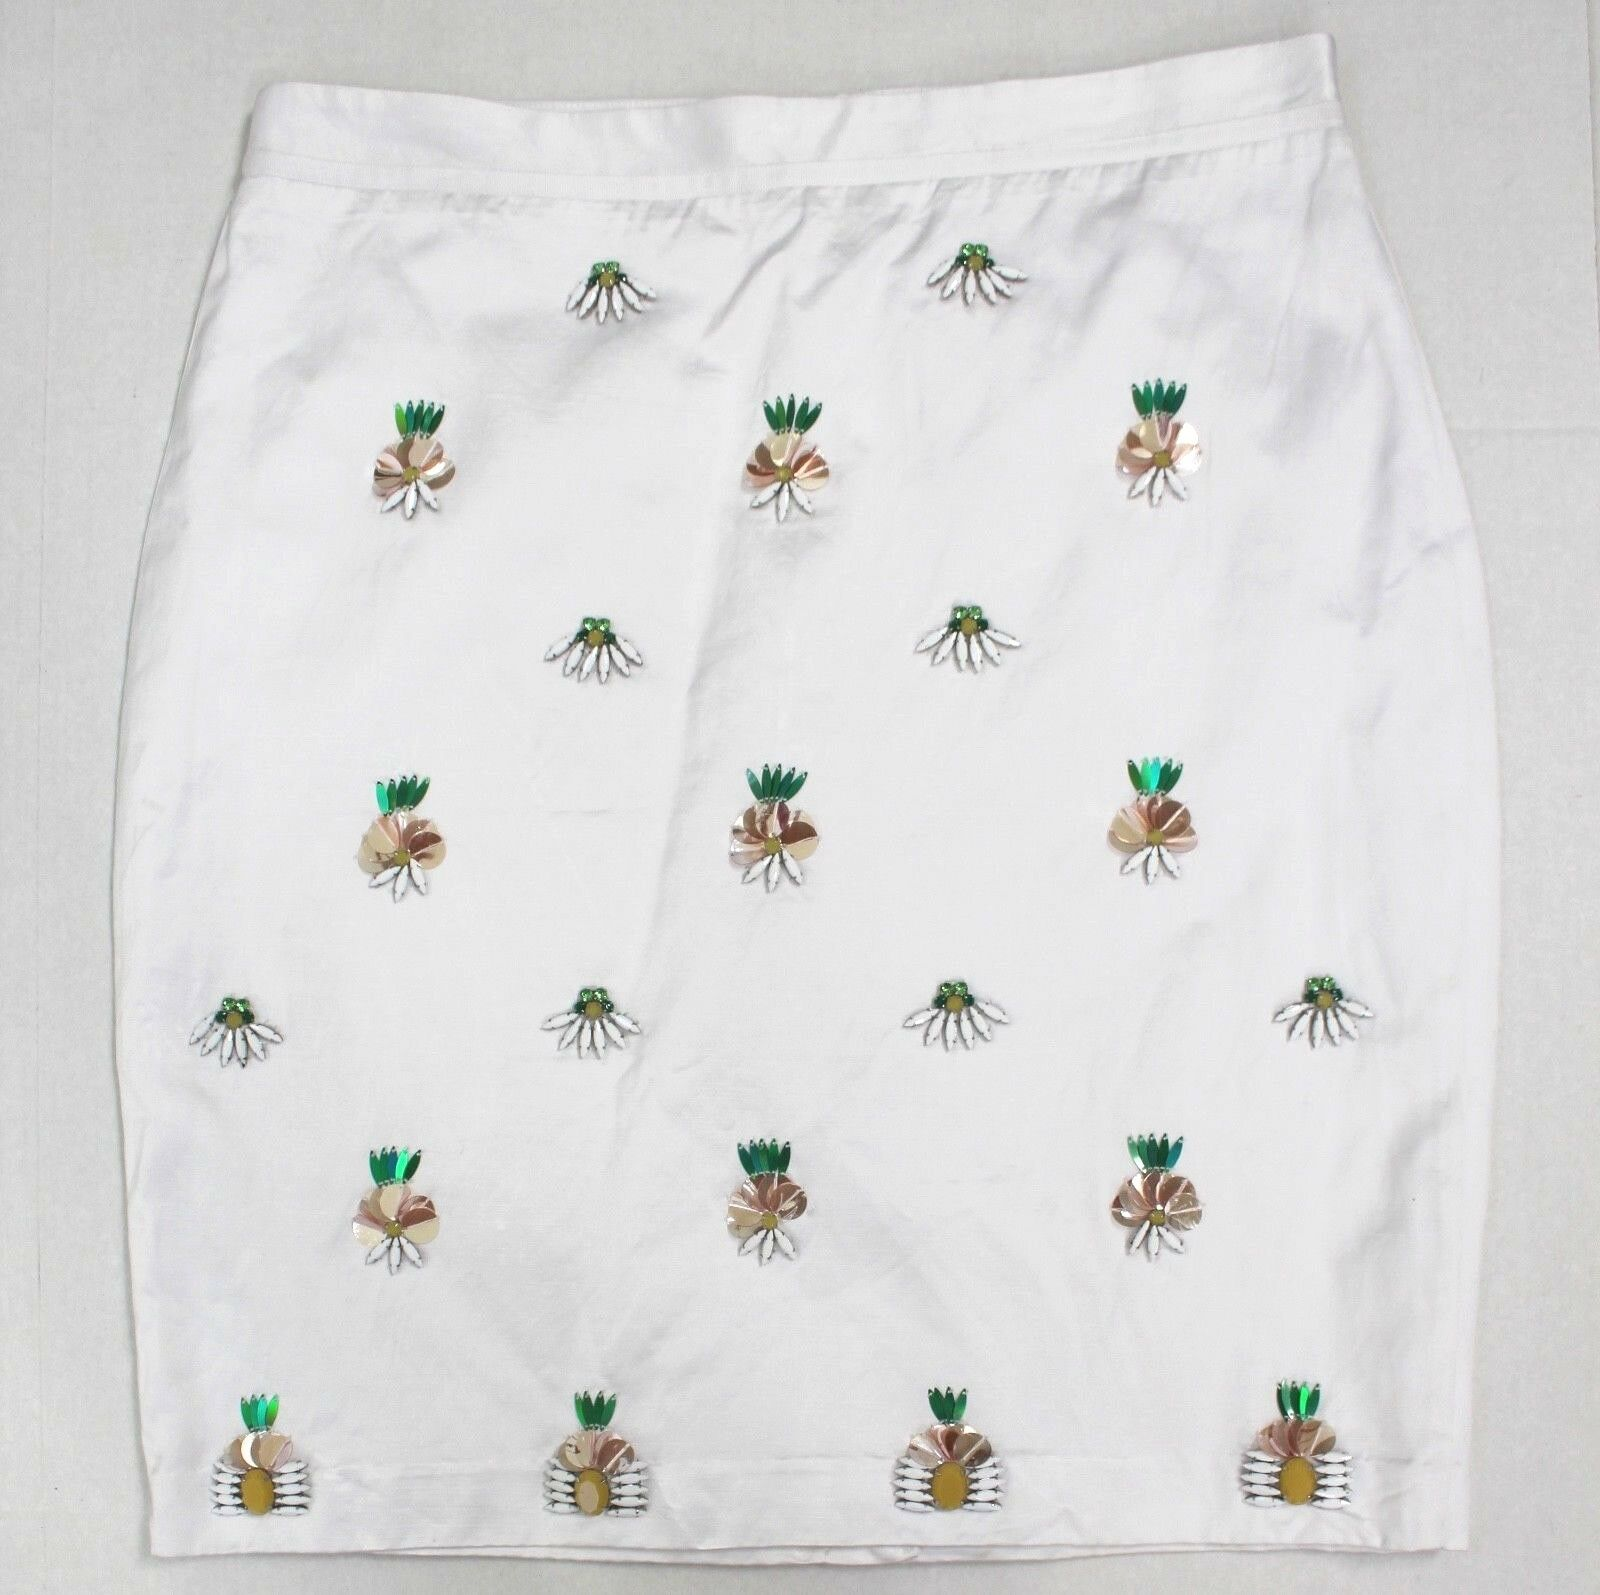 Banana Republic White Pineapple Embellished Beaded Pencil Skirt Size 12